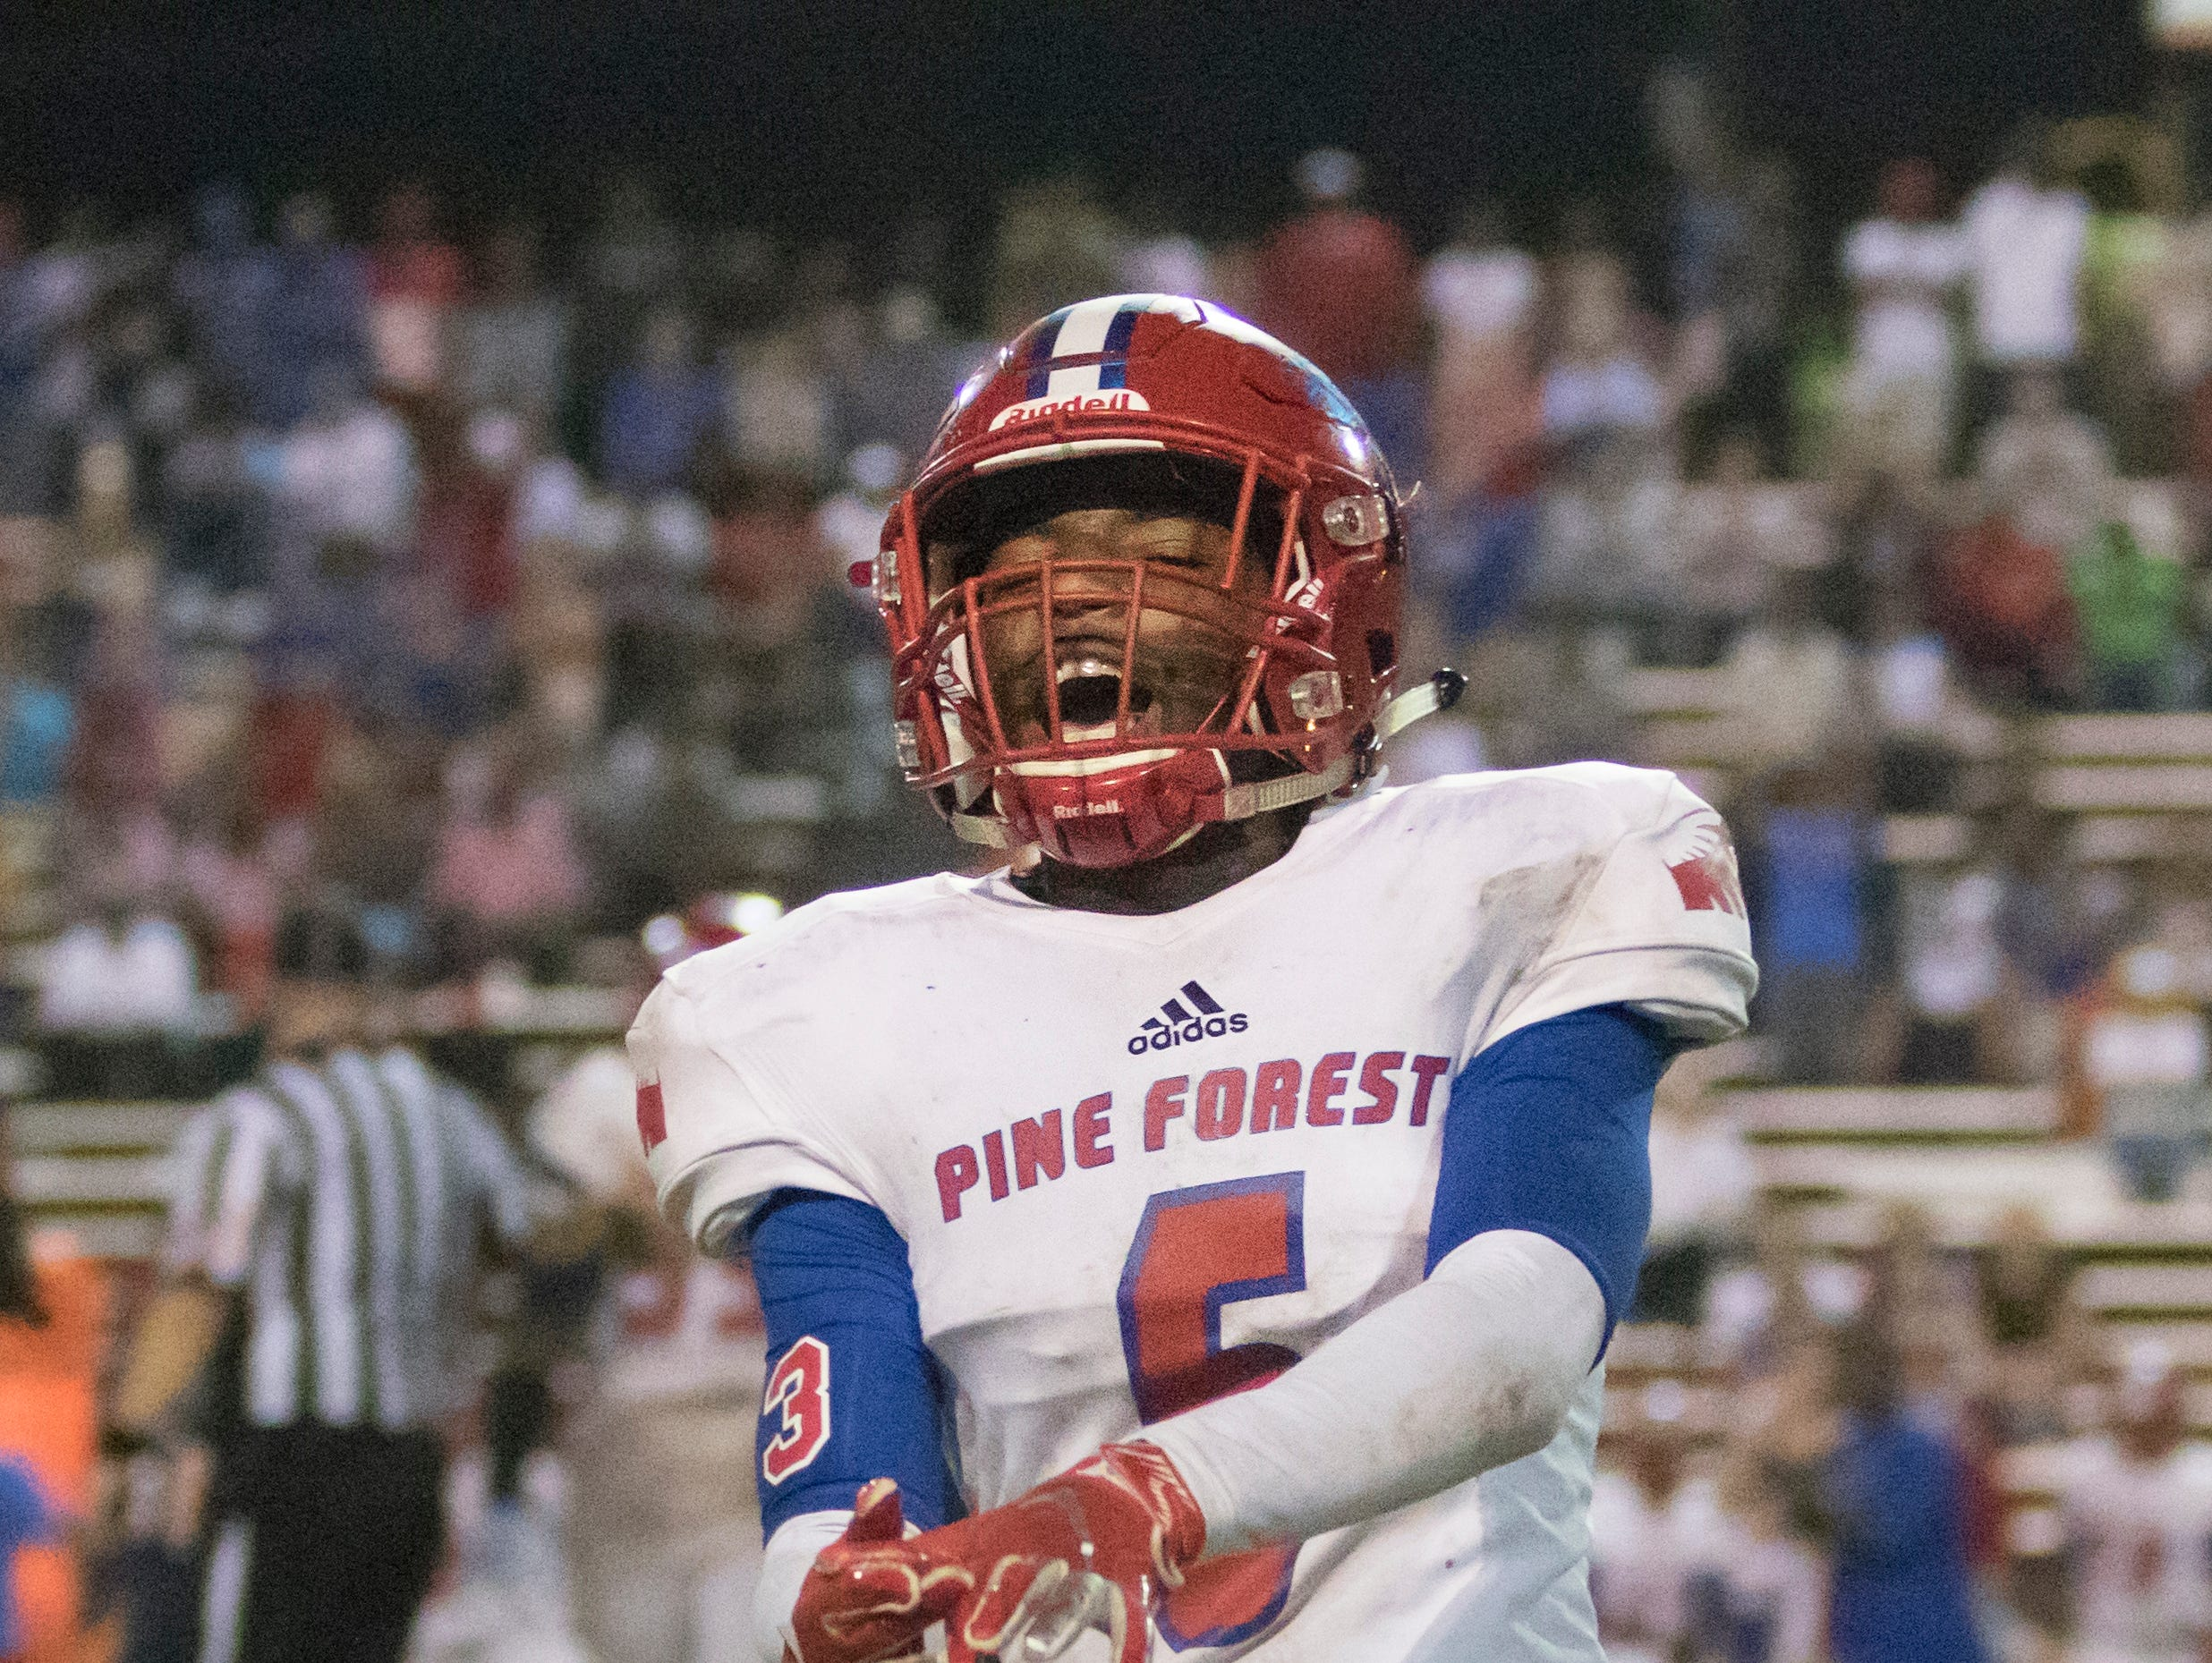 Vonquarius Brown (6) taunts the sideline  with a Gator chomp after the Eagles hold on 4th down and get the ball during the Pine Forest vs Escambia football game at Escambia High School in Pensacola on Friday, September 28, 2018.